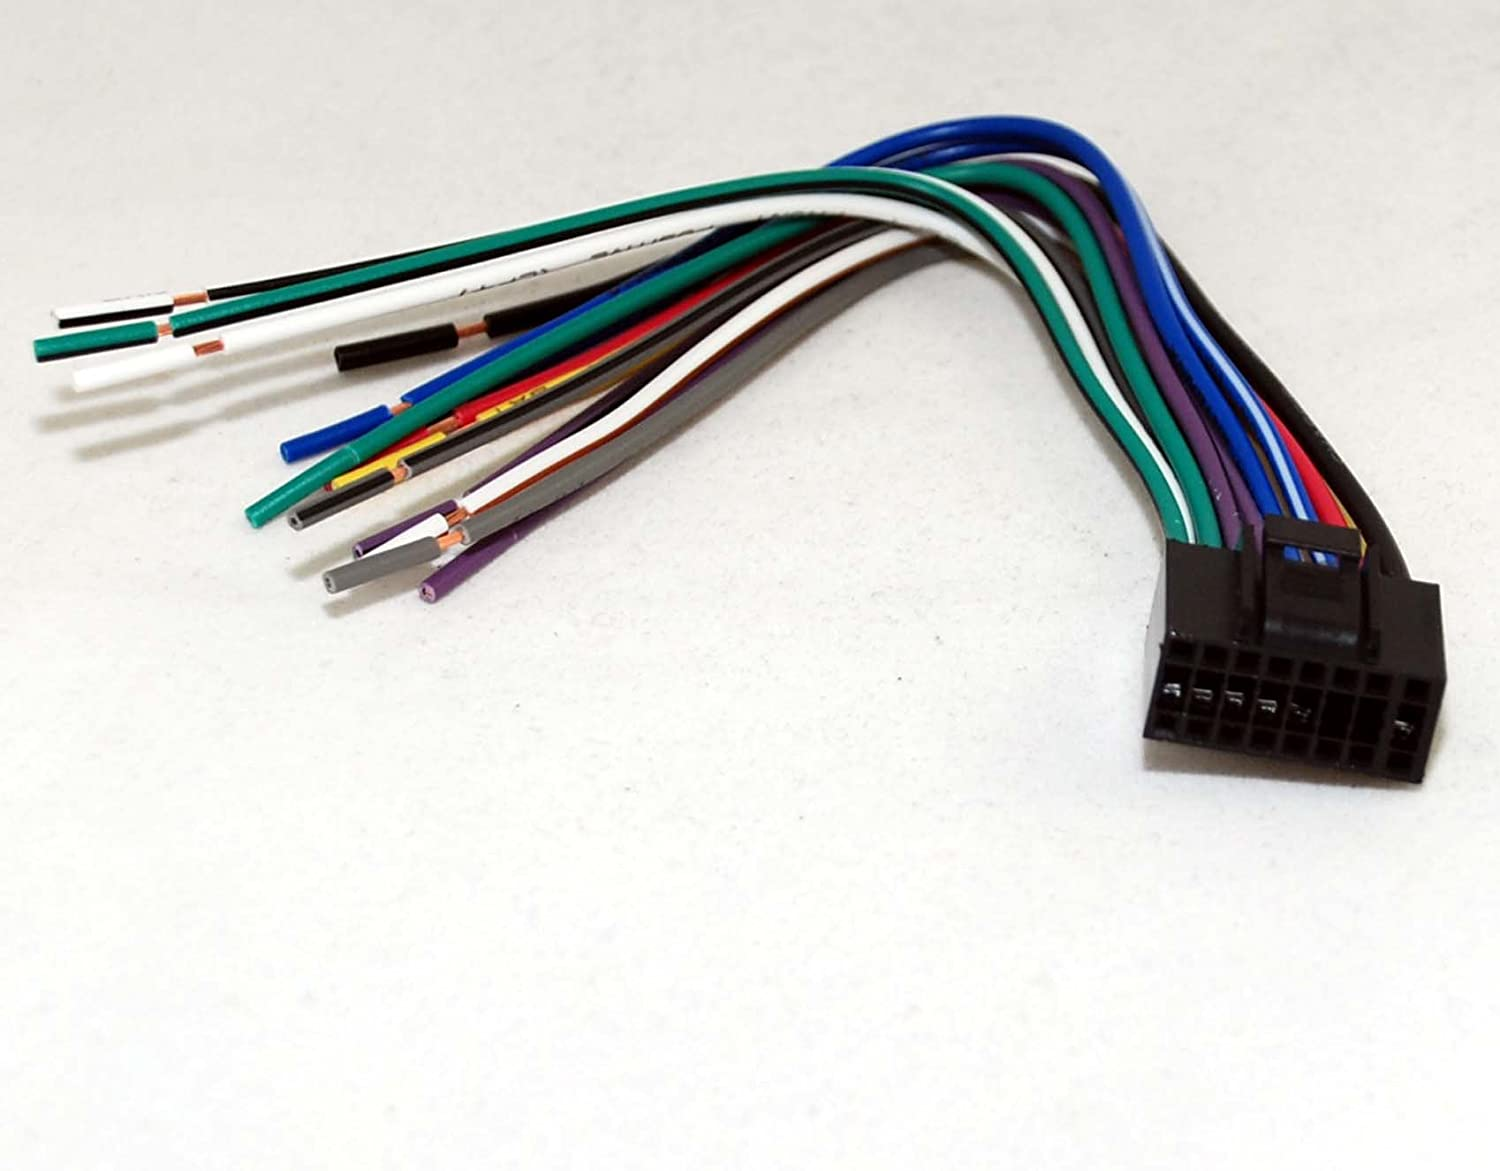 61Rzeblbo0L._SL1500_ amazon com xtenzi harness for dual 16 pin wire harness xdvd8181  at mifinder.co